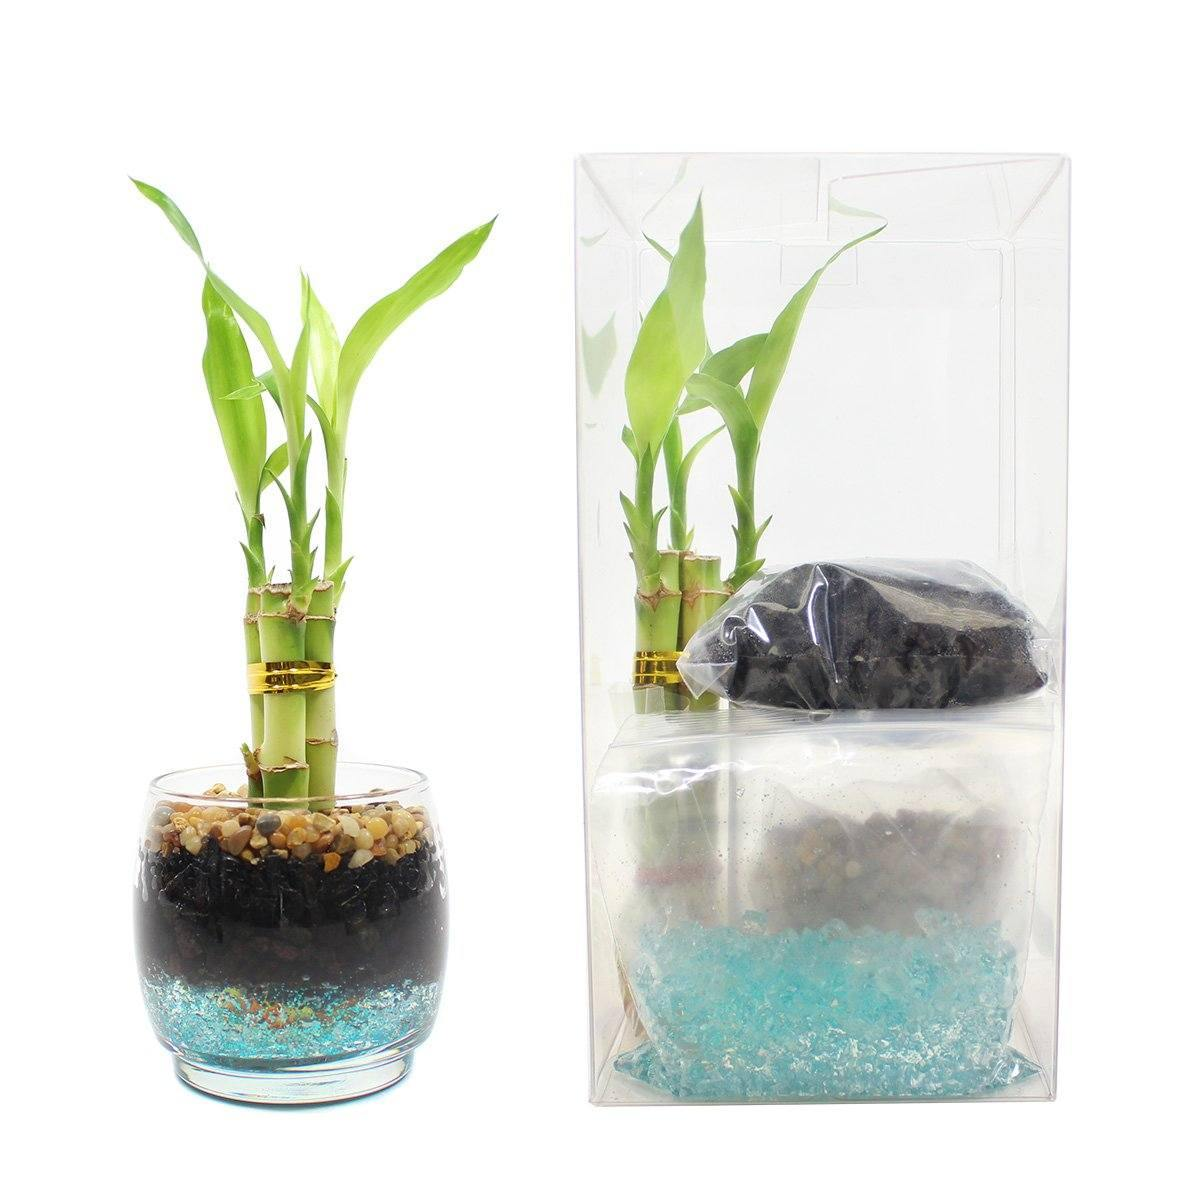 LUCKY BAMBOO KIT - Geoponics Inc